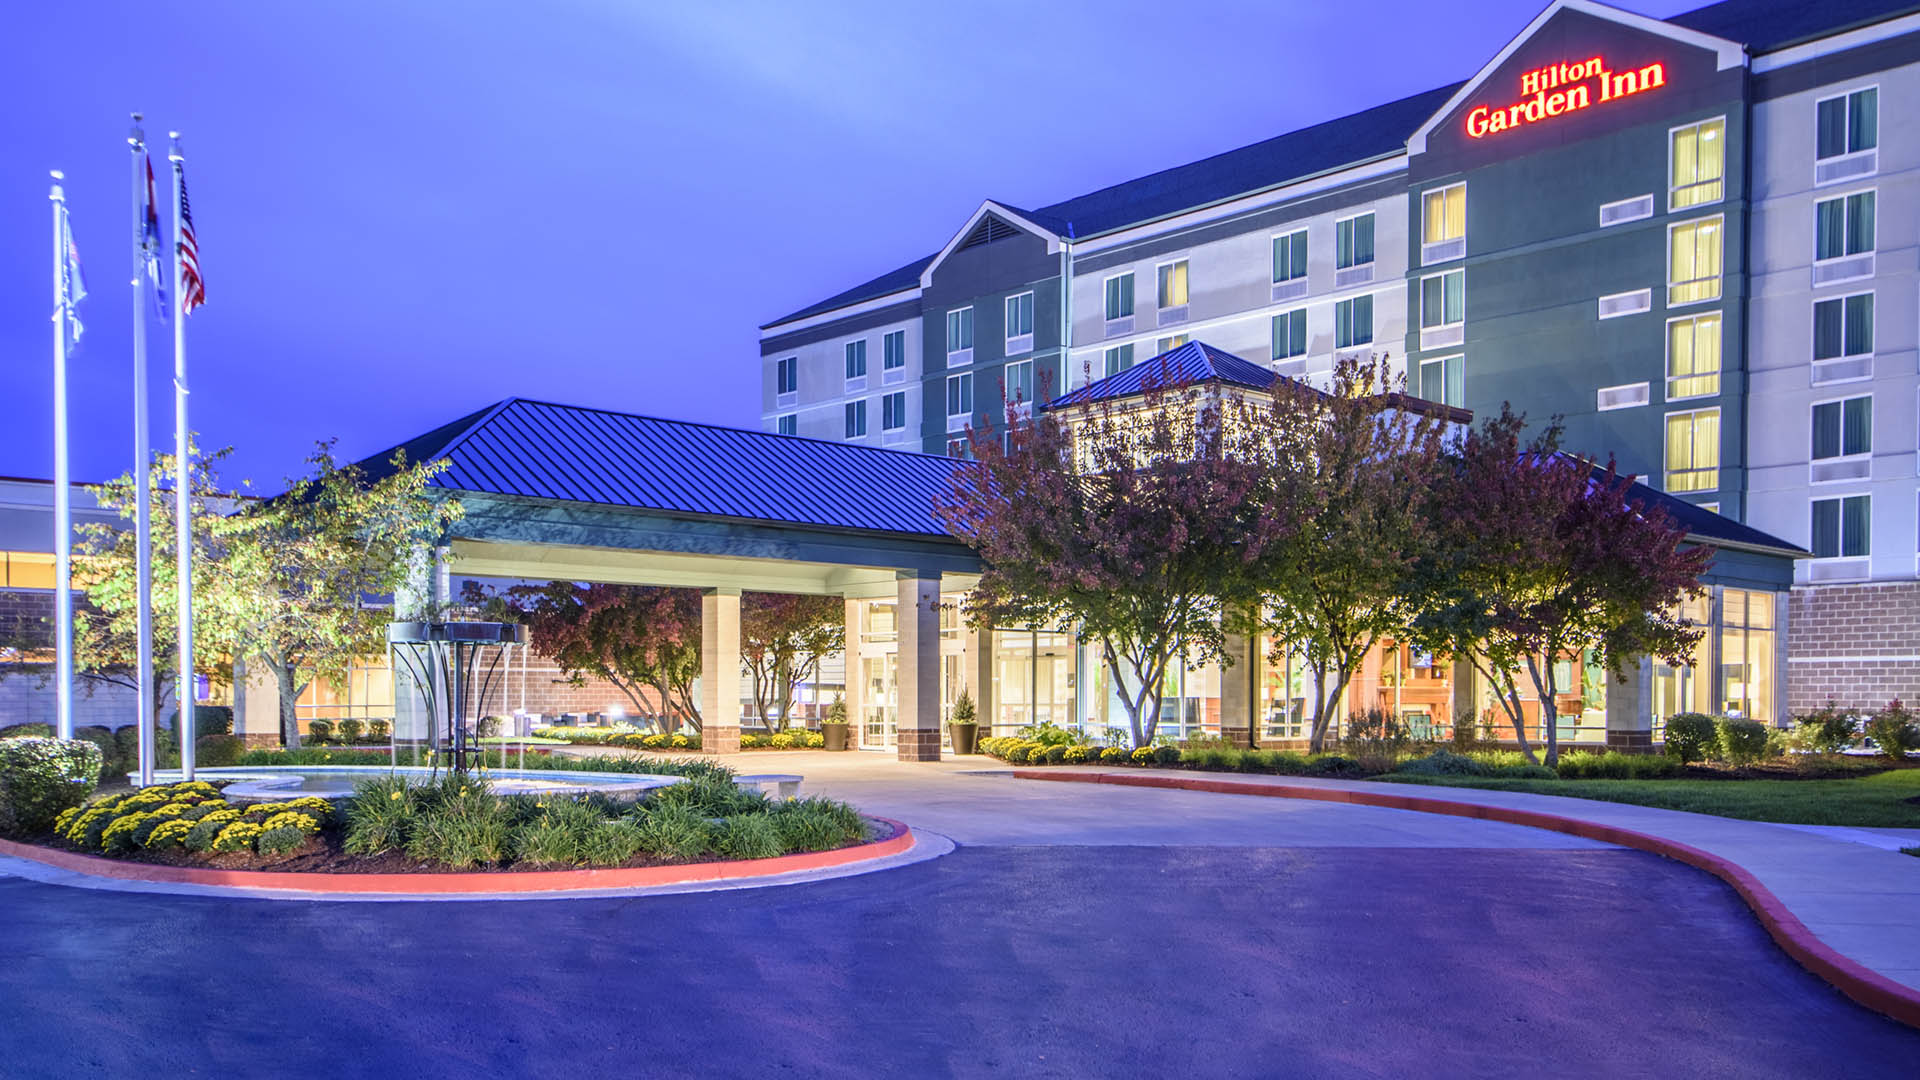 Hawkeye hotels hotel management investment and development company for Hilton garden inn independence